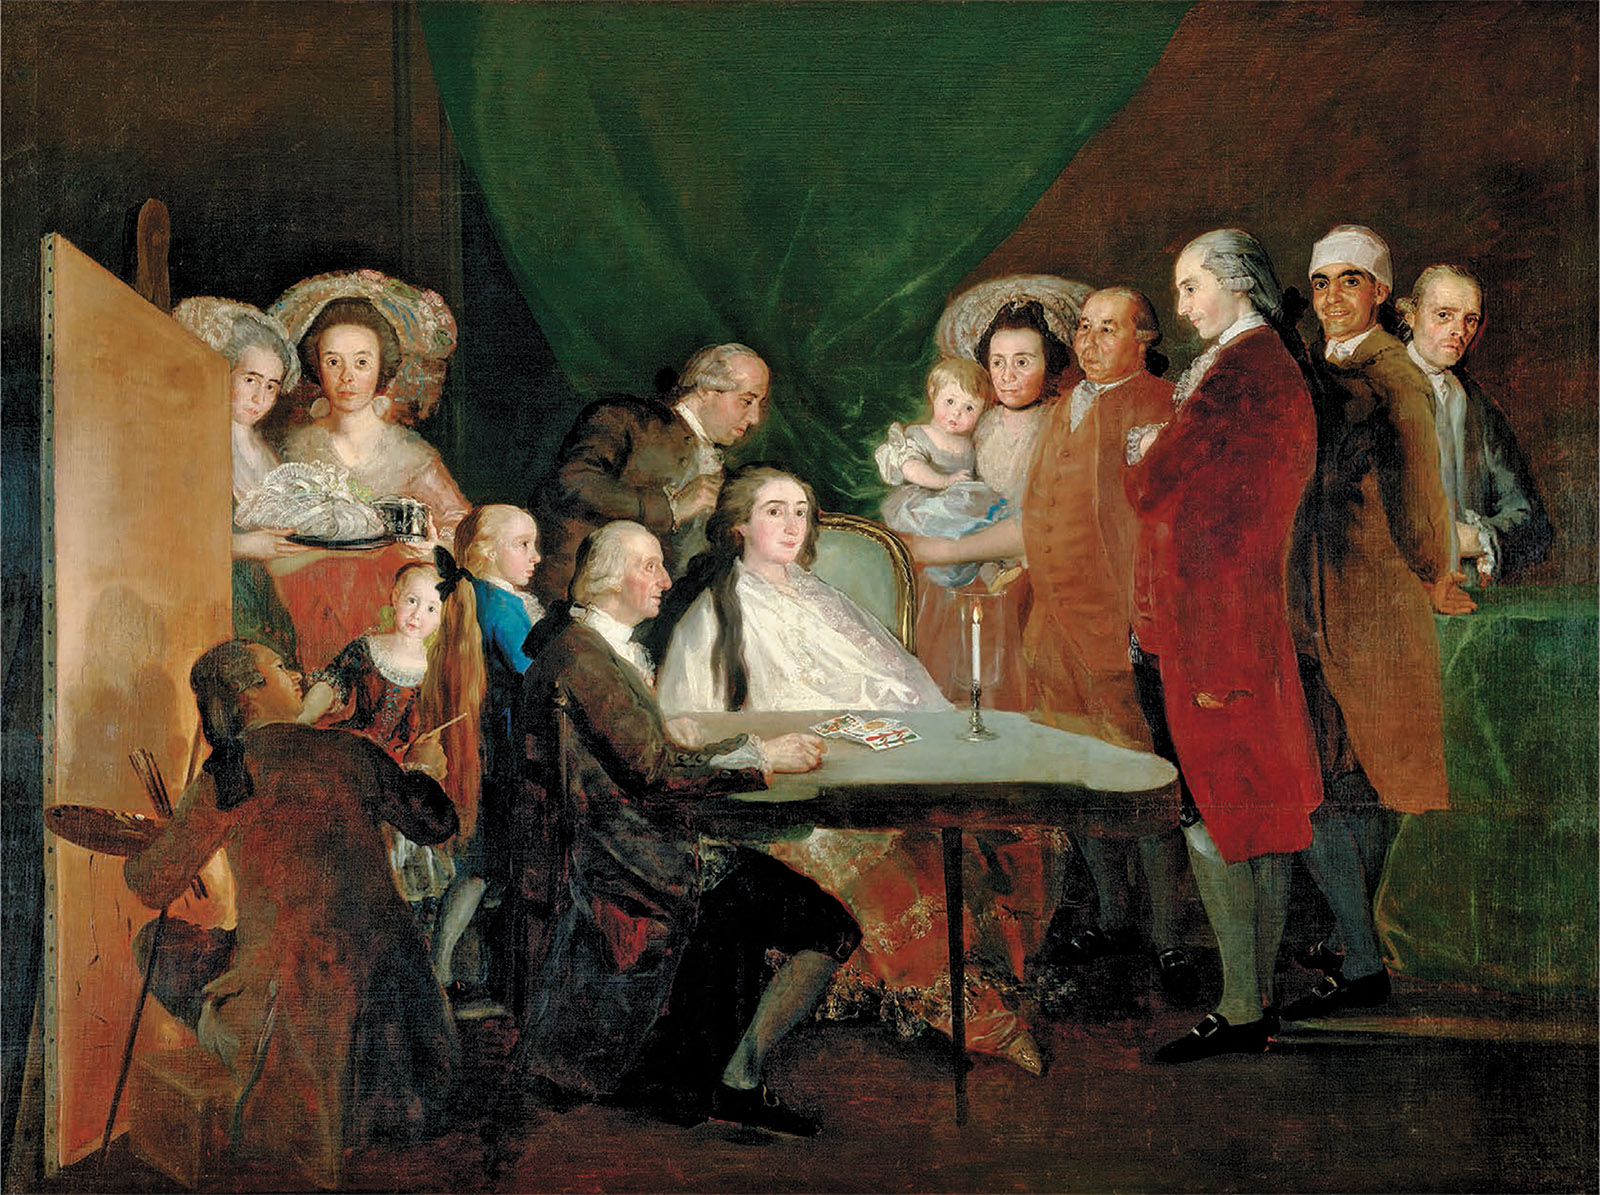 The Family of the Infante don Luis de Borbón; painting by Francisco Goya